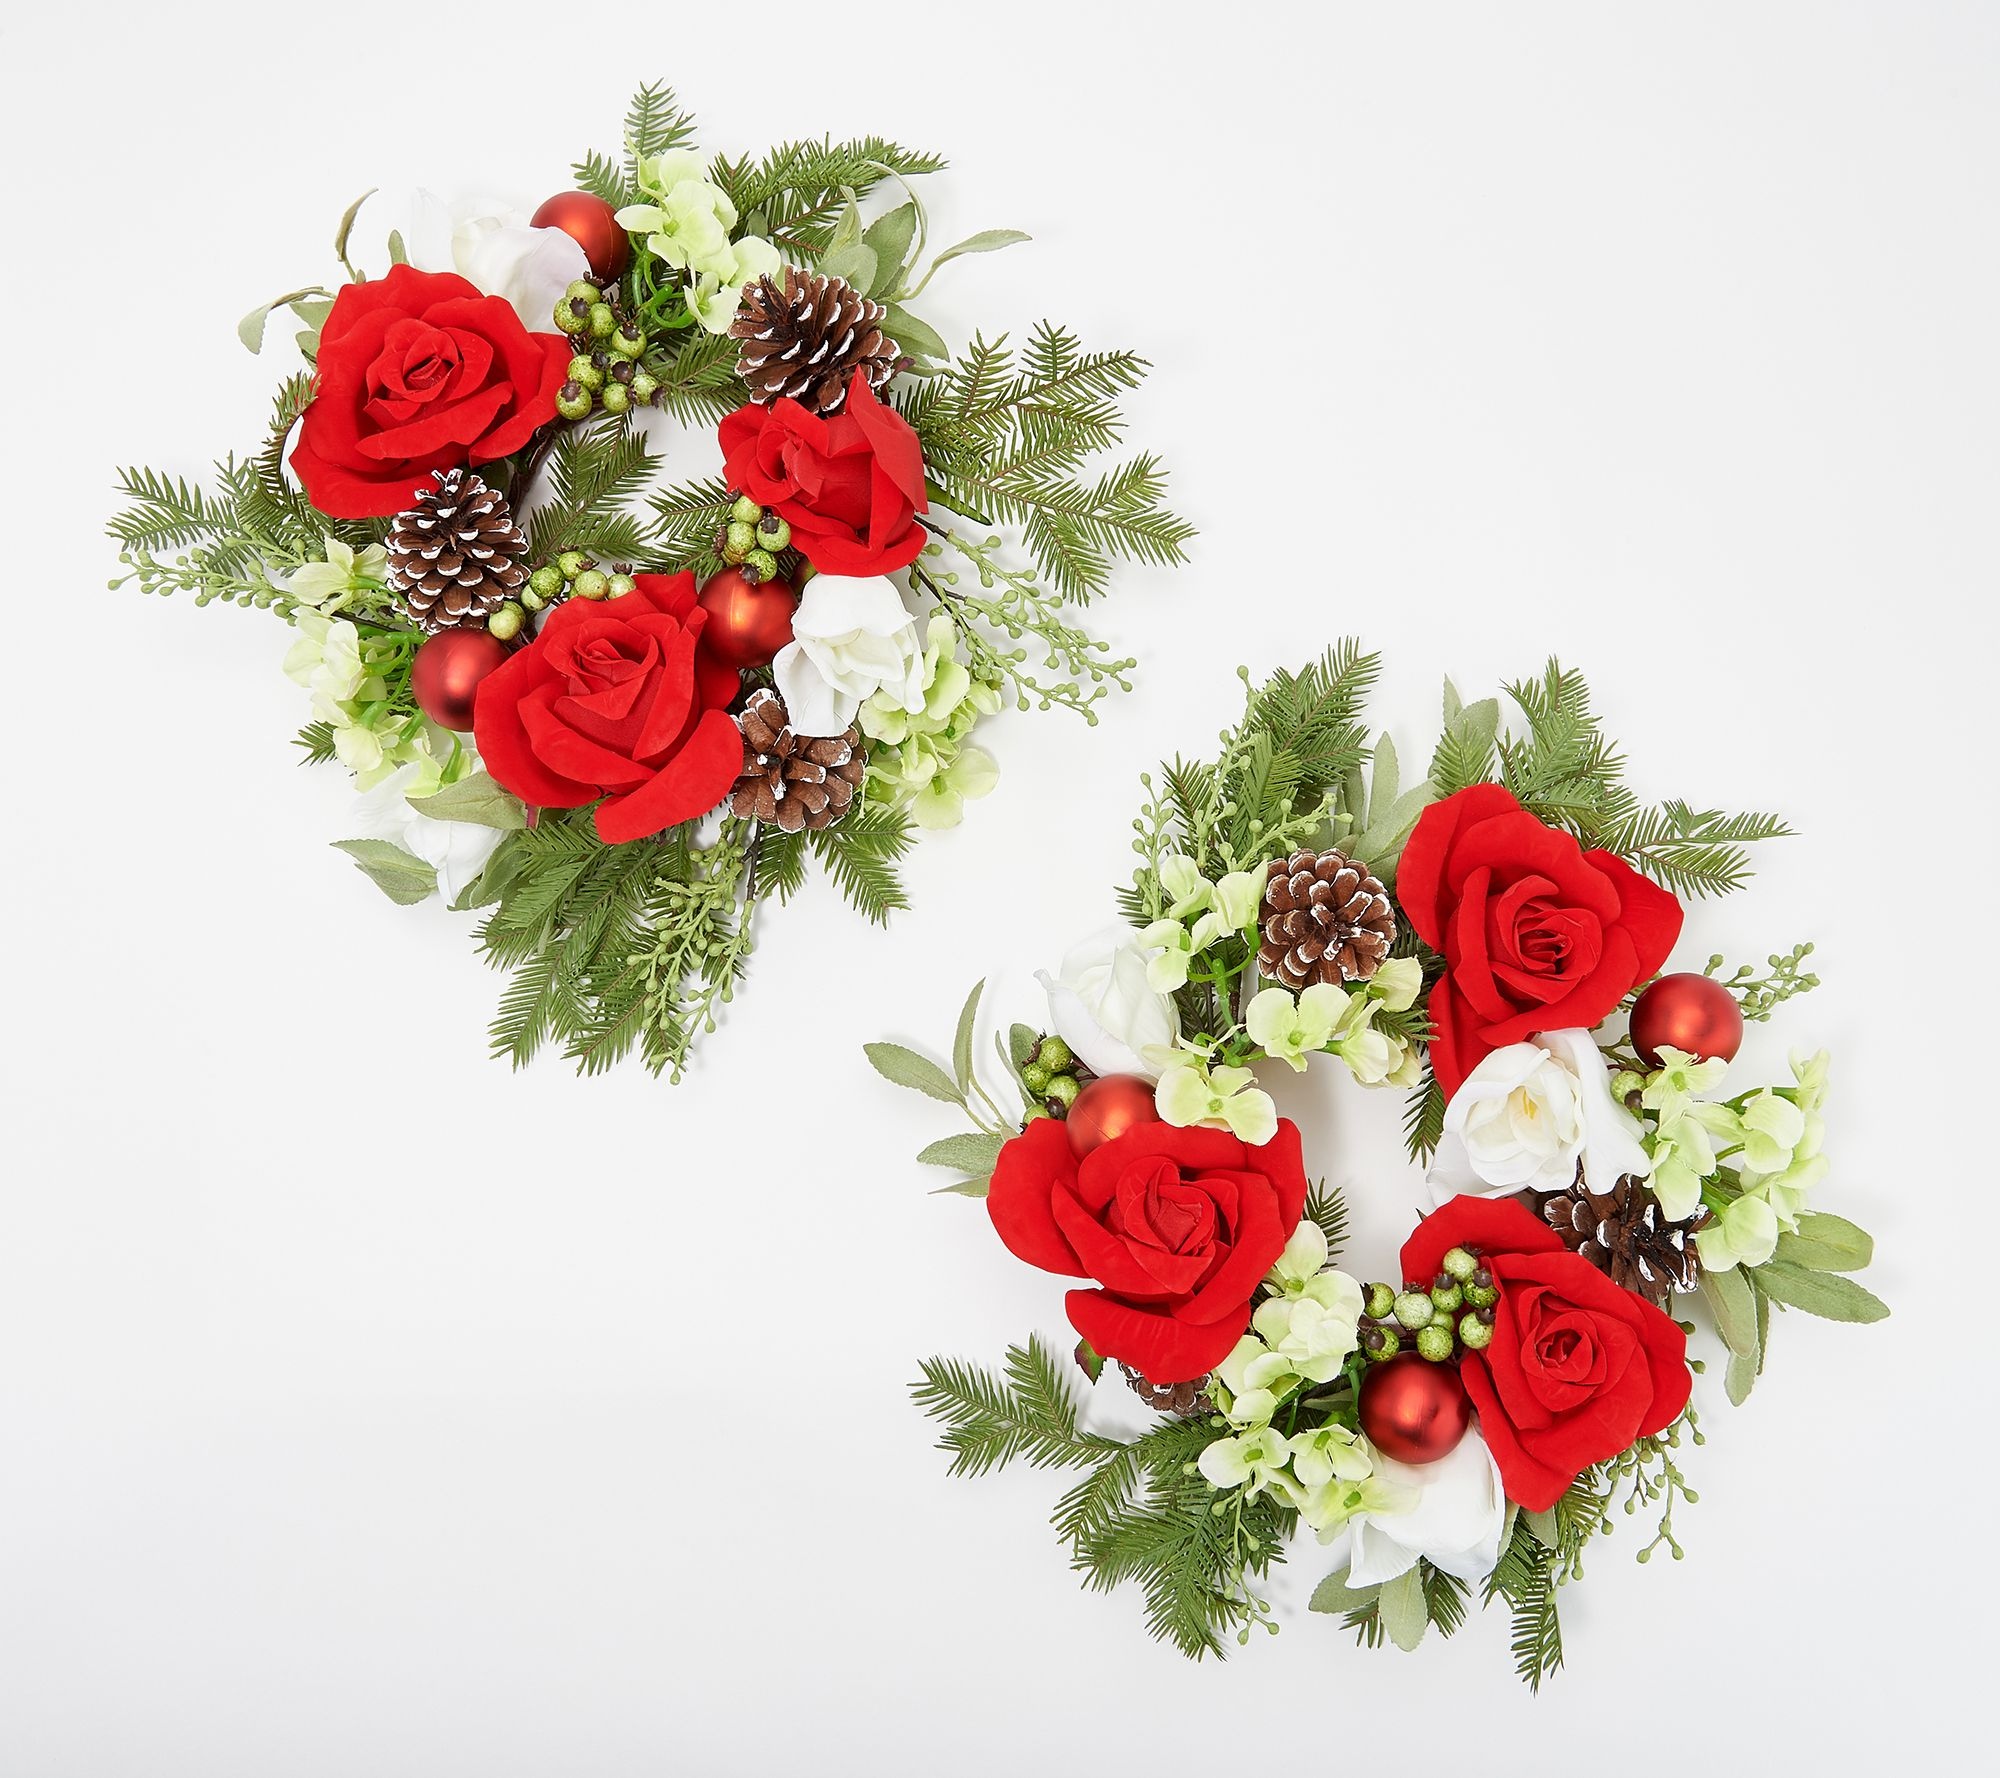 Christmas Candle Rings.S 2 Christmas Rose Hydrangea And Berry Candle Rings By Valerie Qvc Com